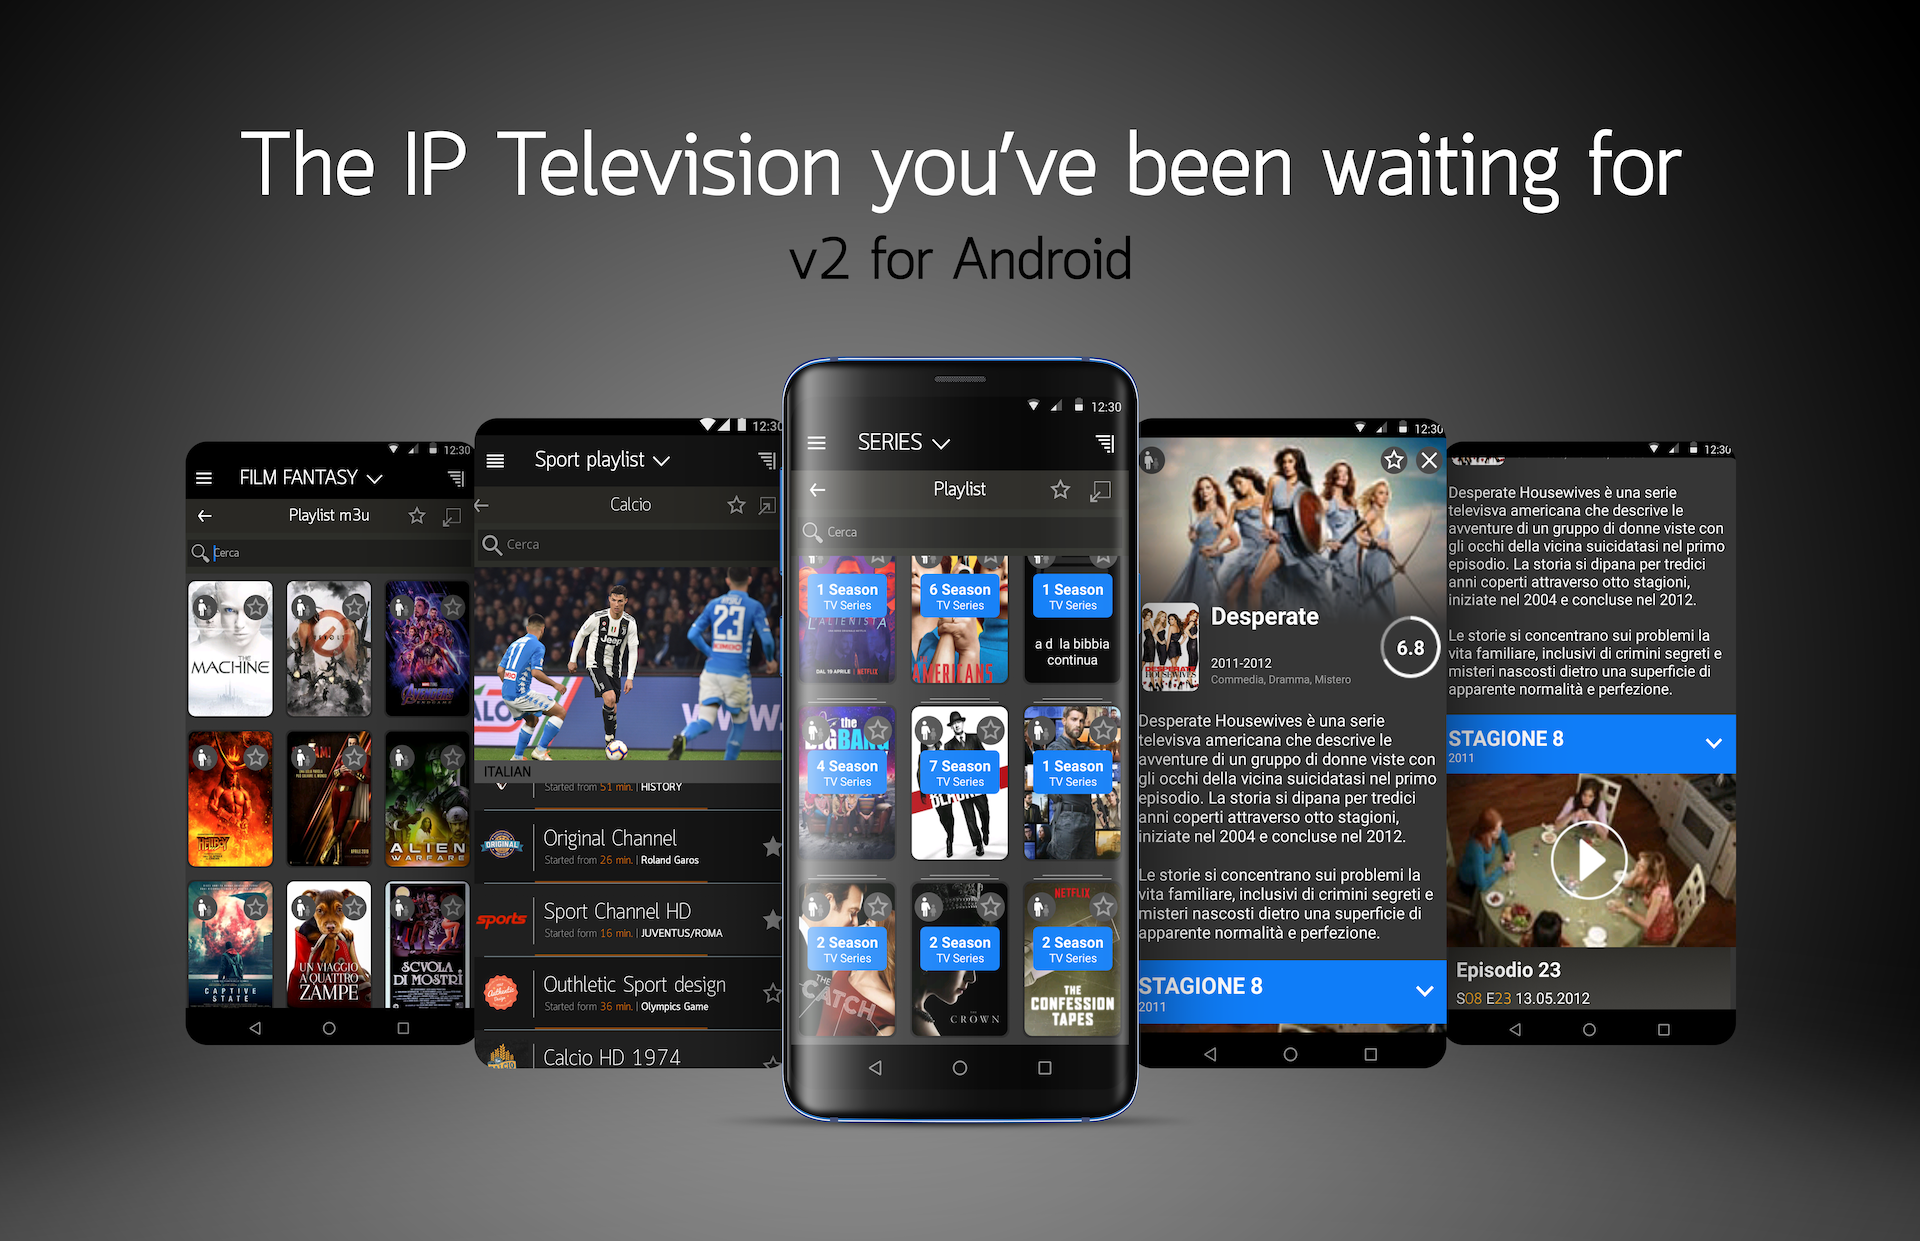 The IP Televison you've be waiting